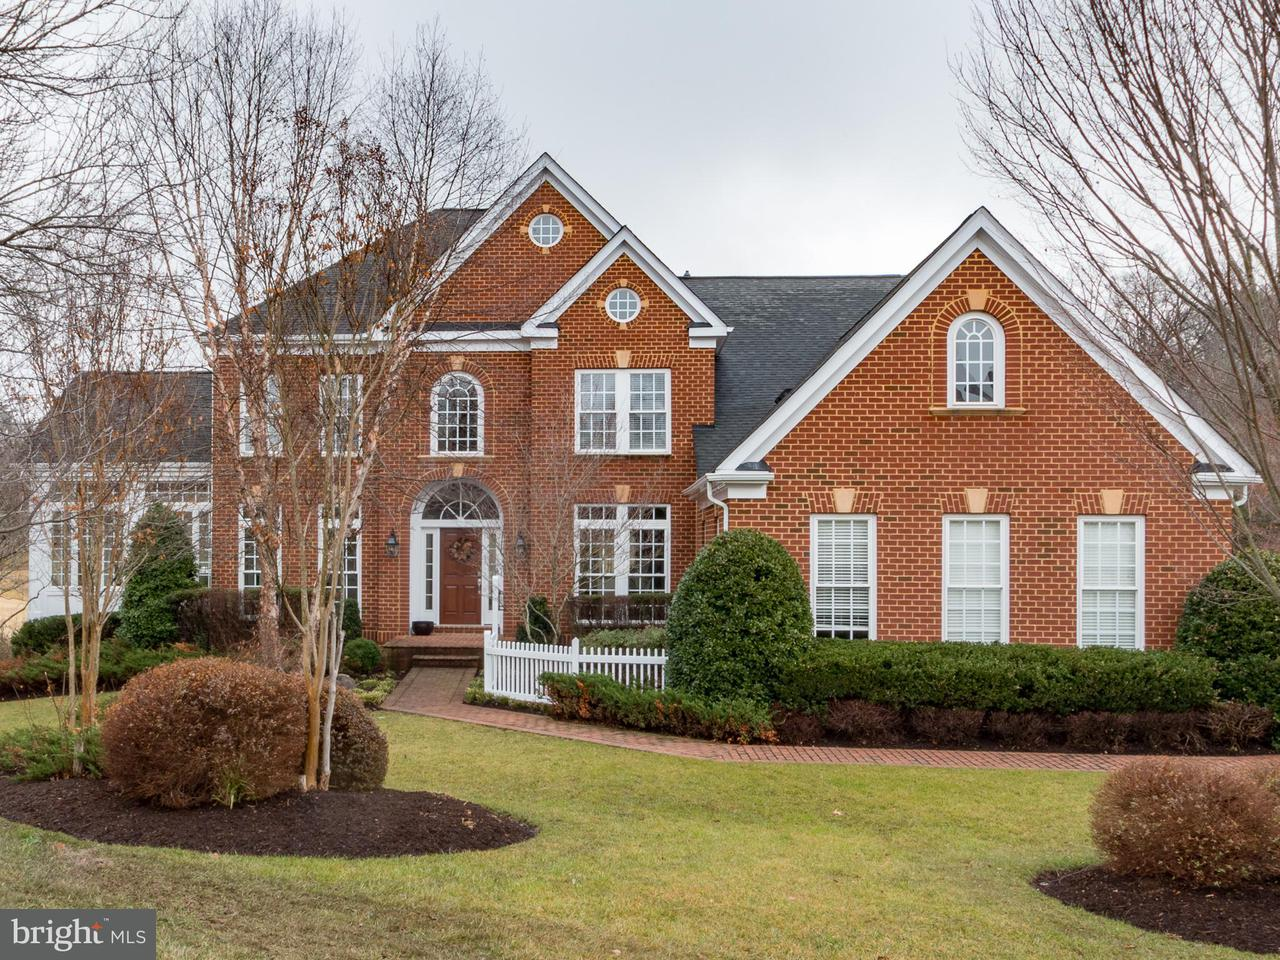 Single Family Home for Sale at 1383 Tattersall Court 1383 Tattersall Court Keswick, Virginia 22947 United States